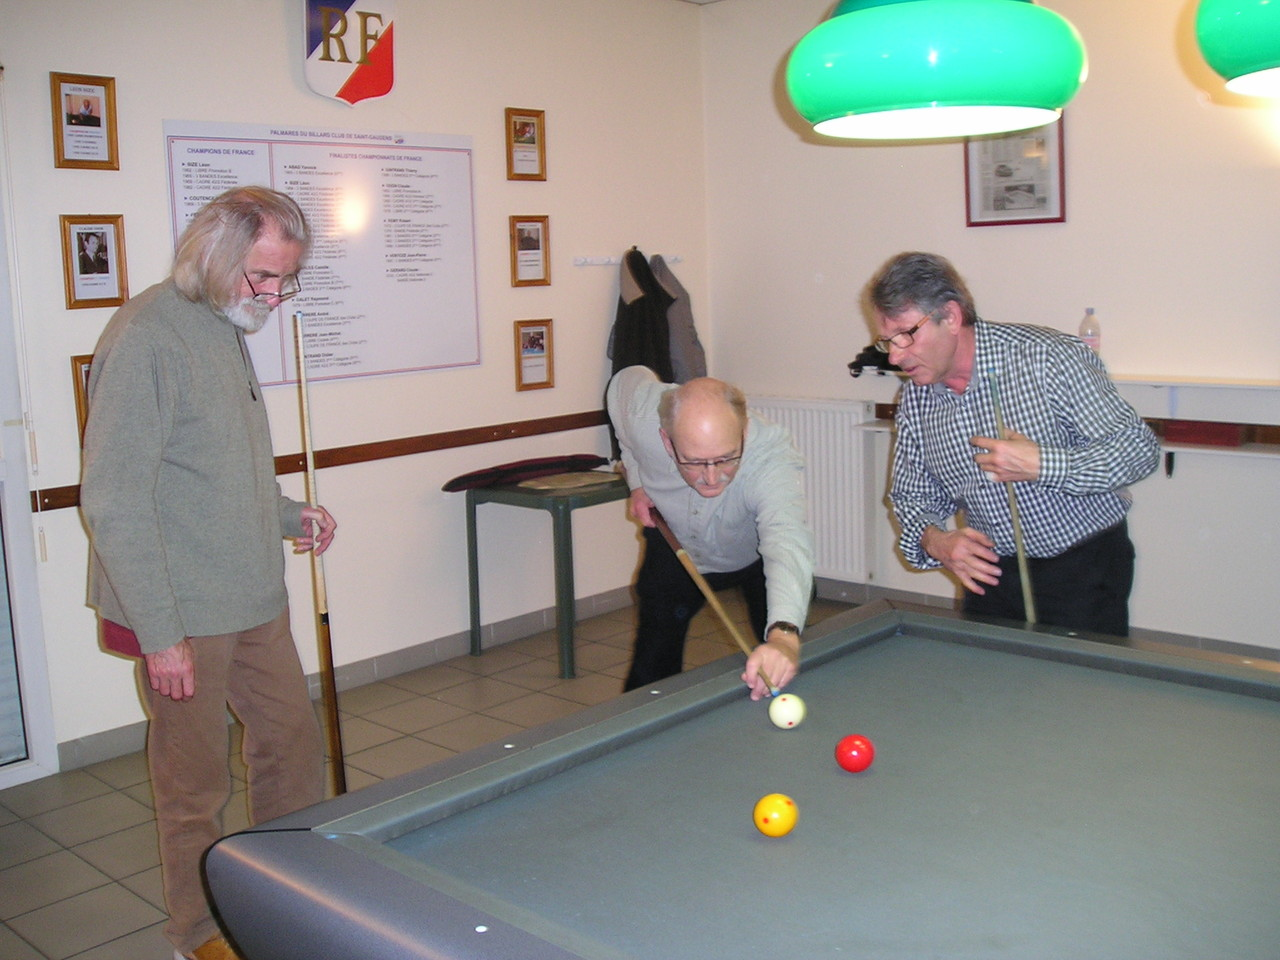 Au billard n°1 Mrs Agasse & Frood, animateur Mr Jublot